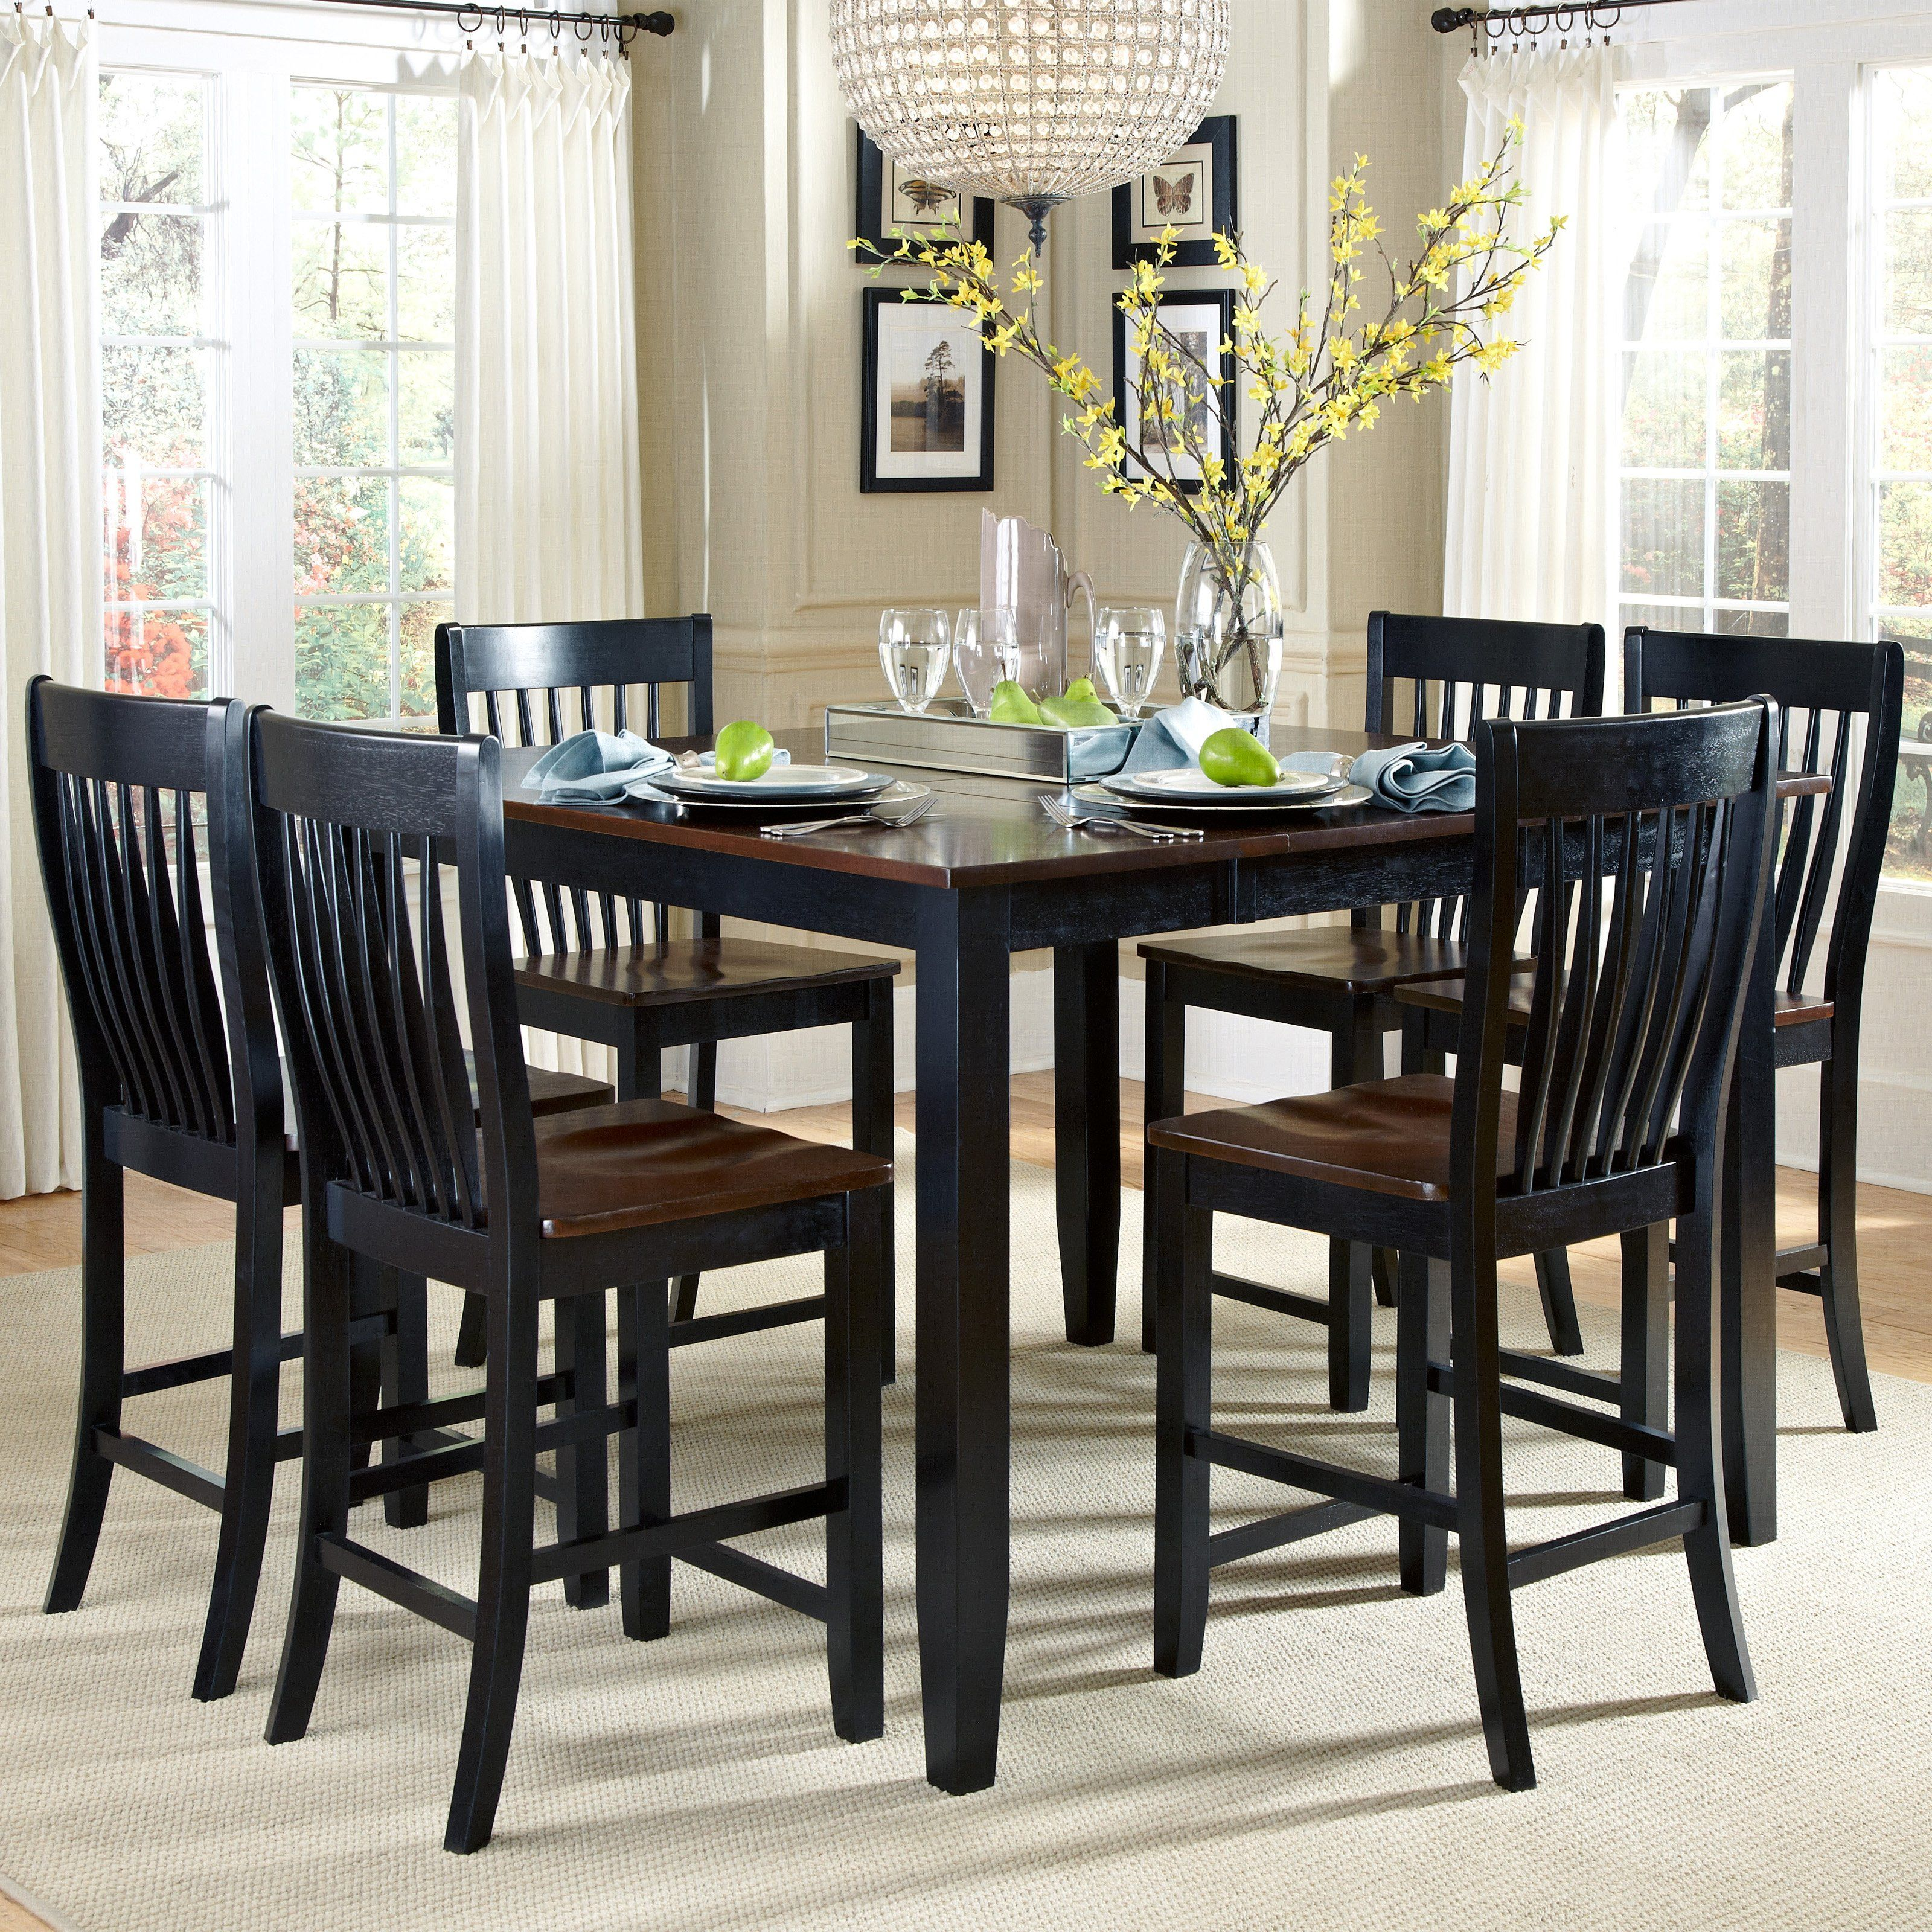 AHB Ellington 7 Piece Counter Height Dining Table